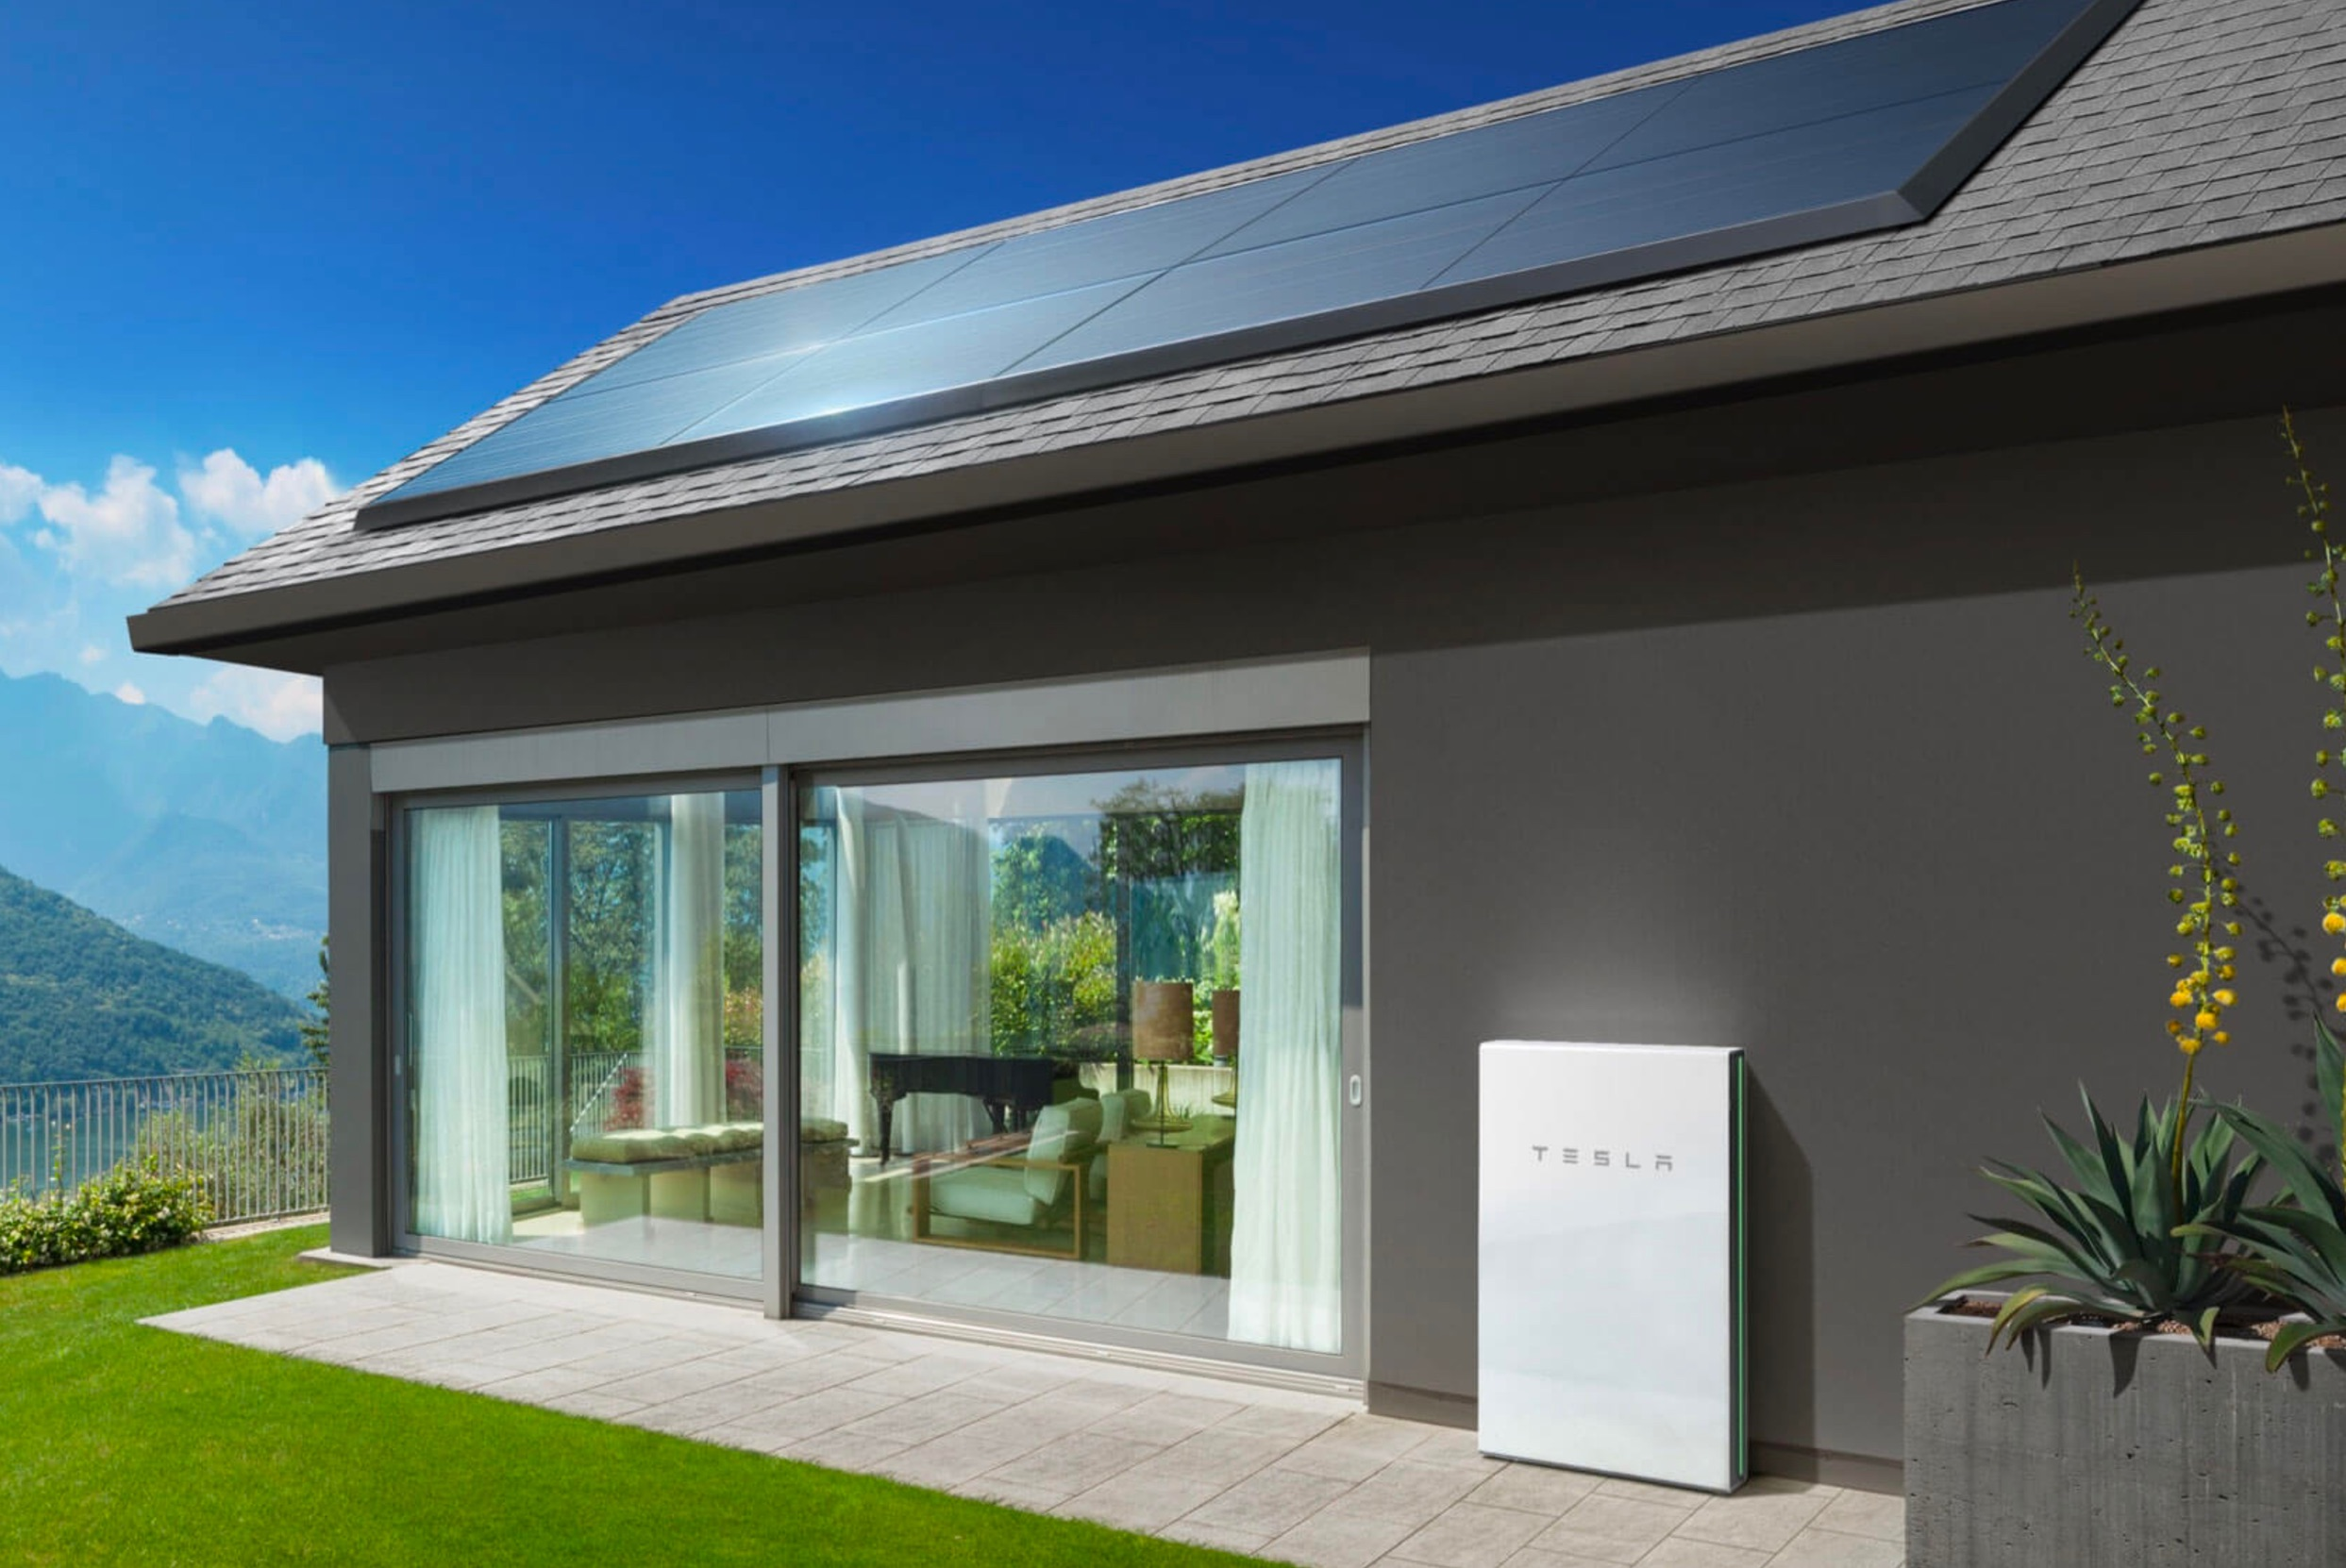 Tesla Shifts Solar Division Goals To Focus On